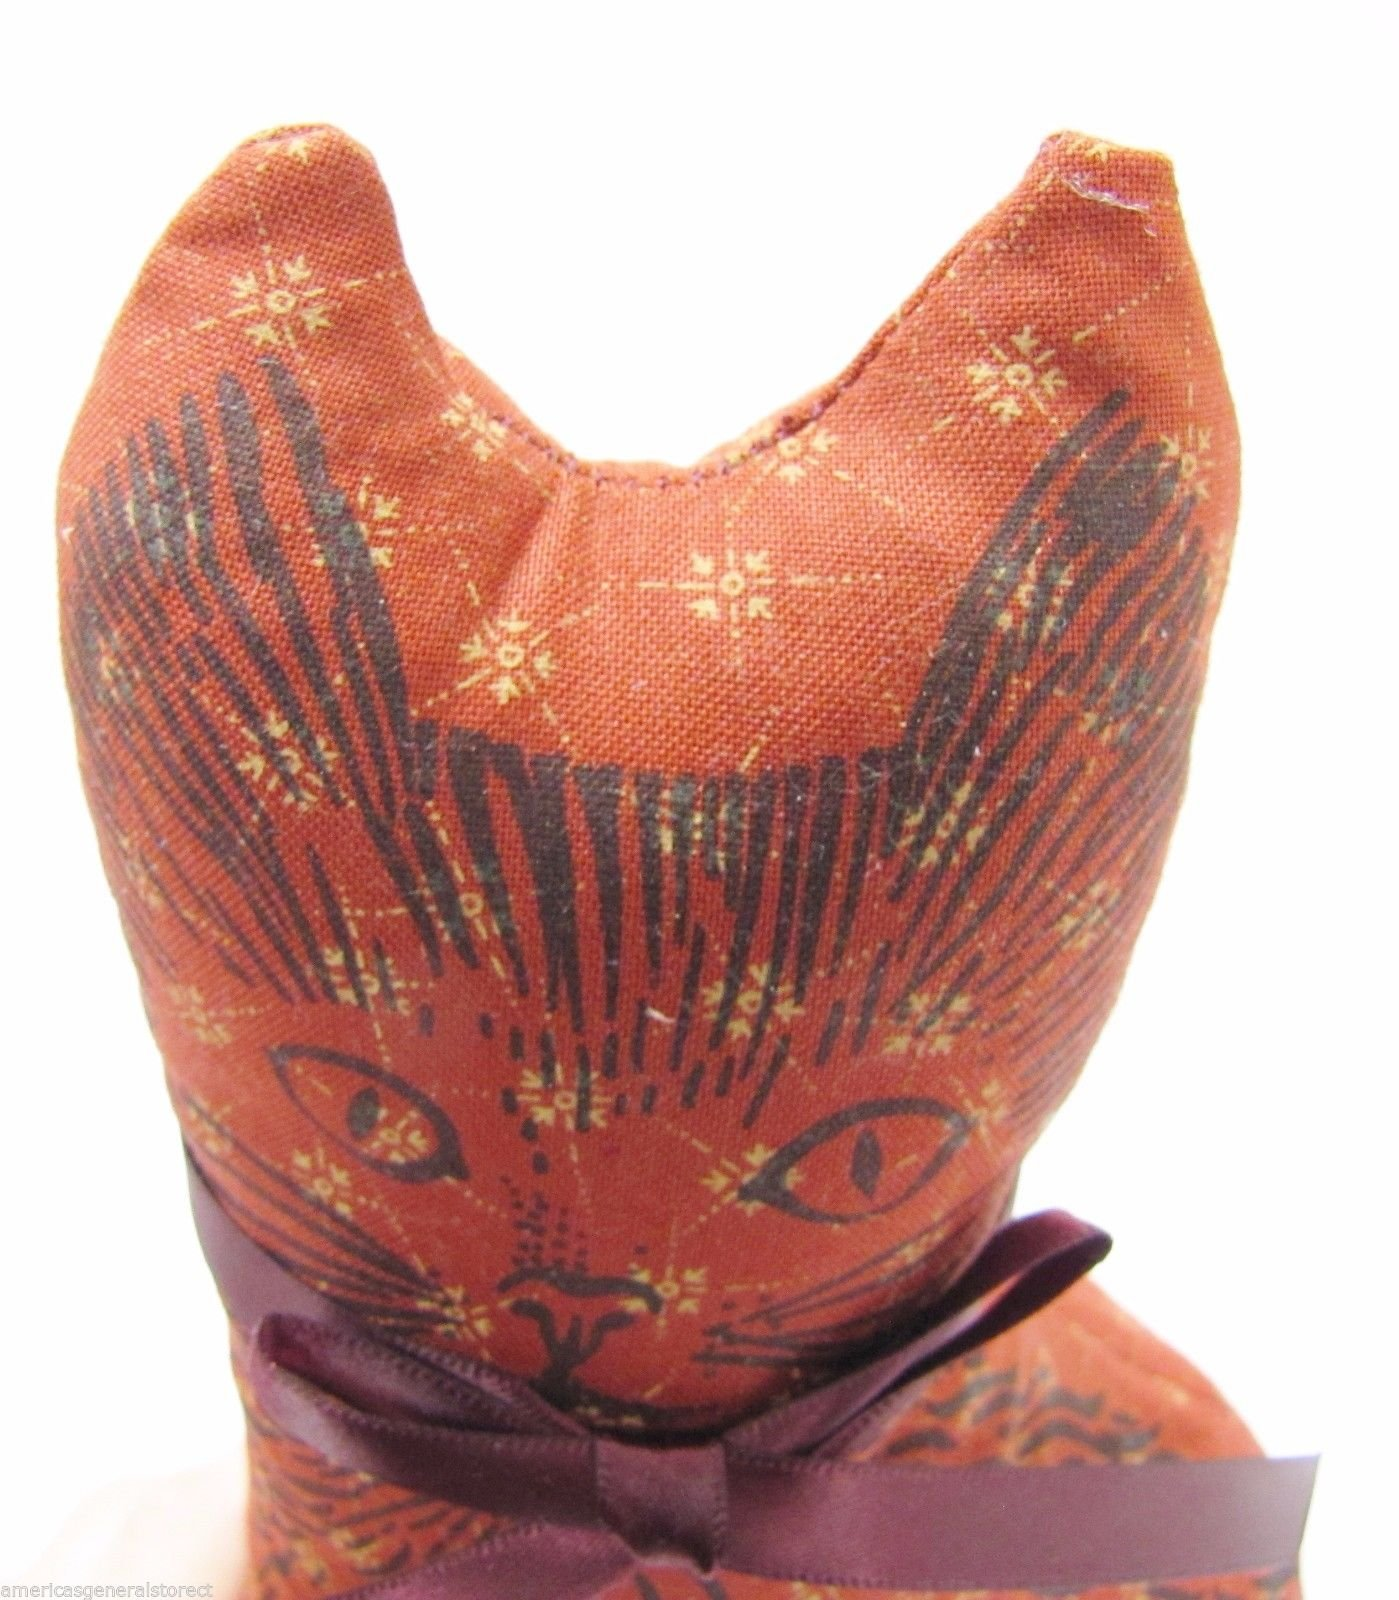 Paine's BALSAM FIR PILLOW 8''x4.5'' CAT SHAPE pine tree sachet scent RUSTY RED by Paine's (Image #3)